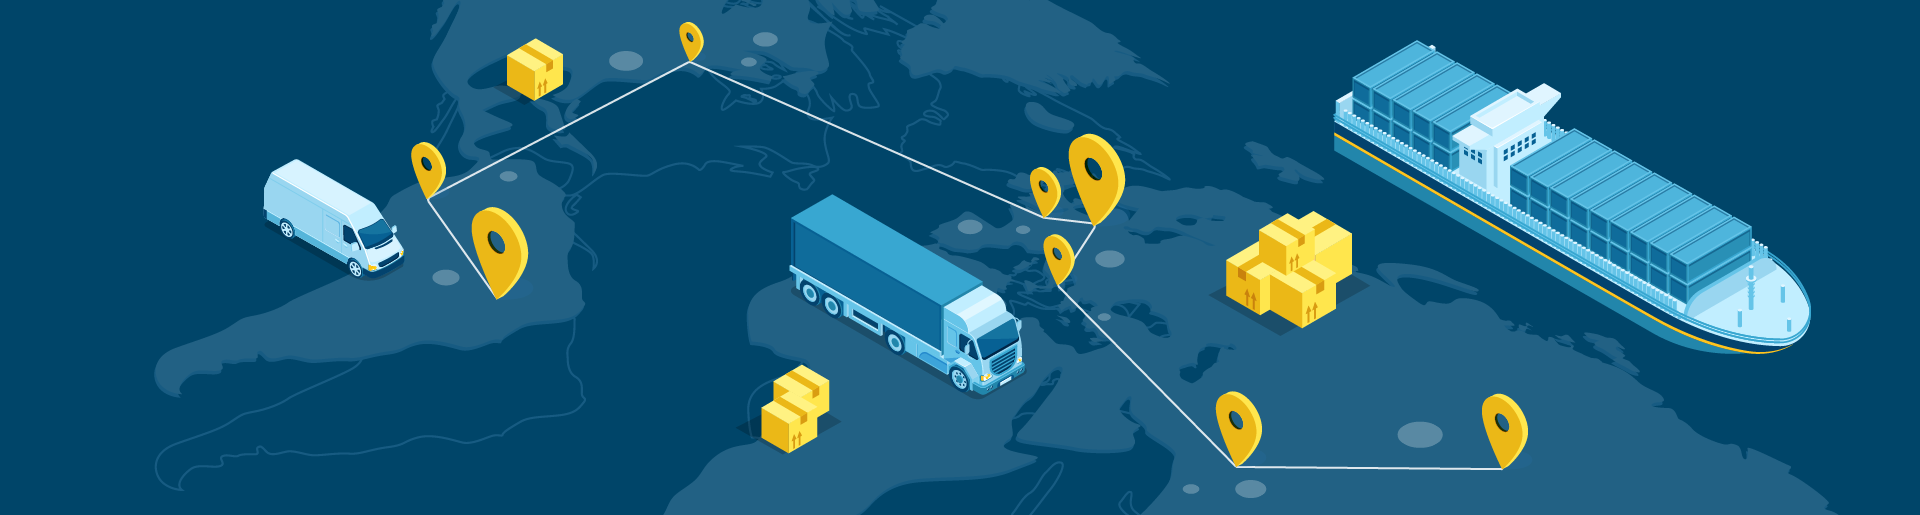 The business value of supply chain visibility